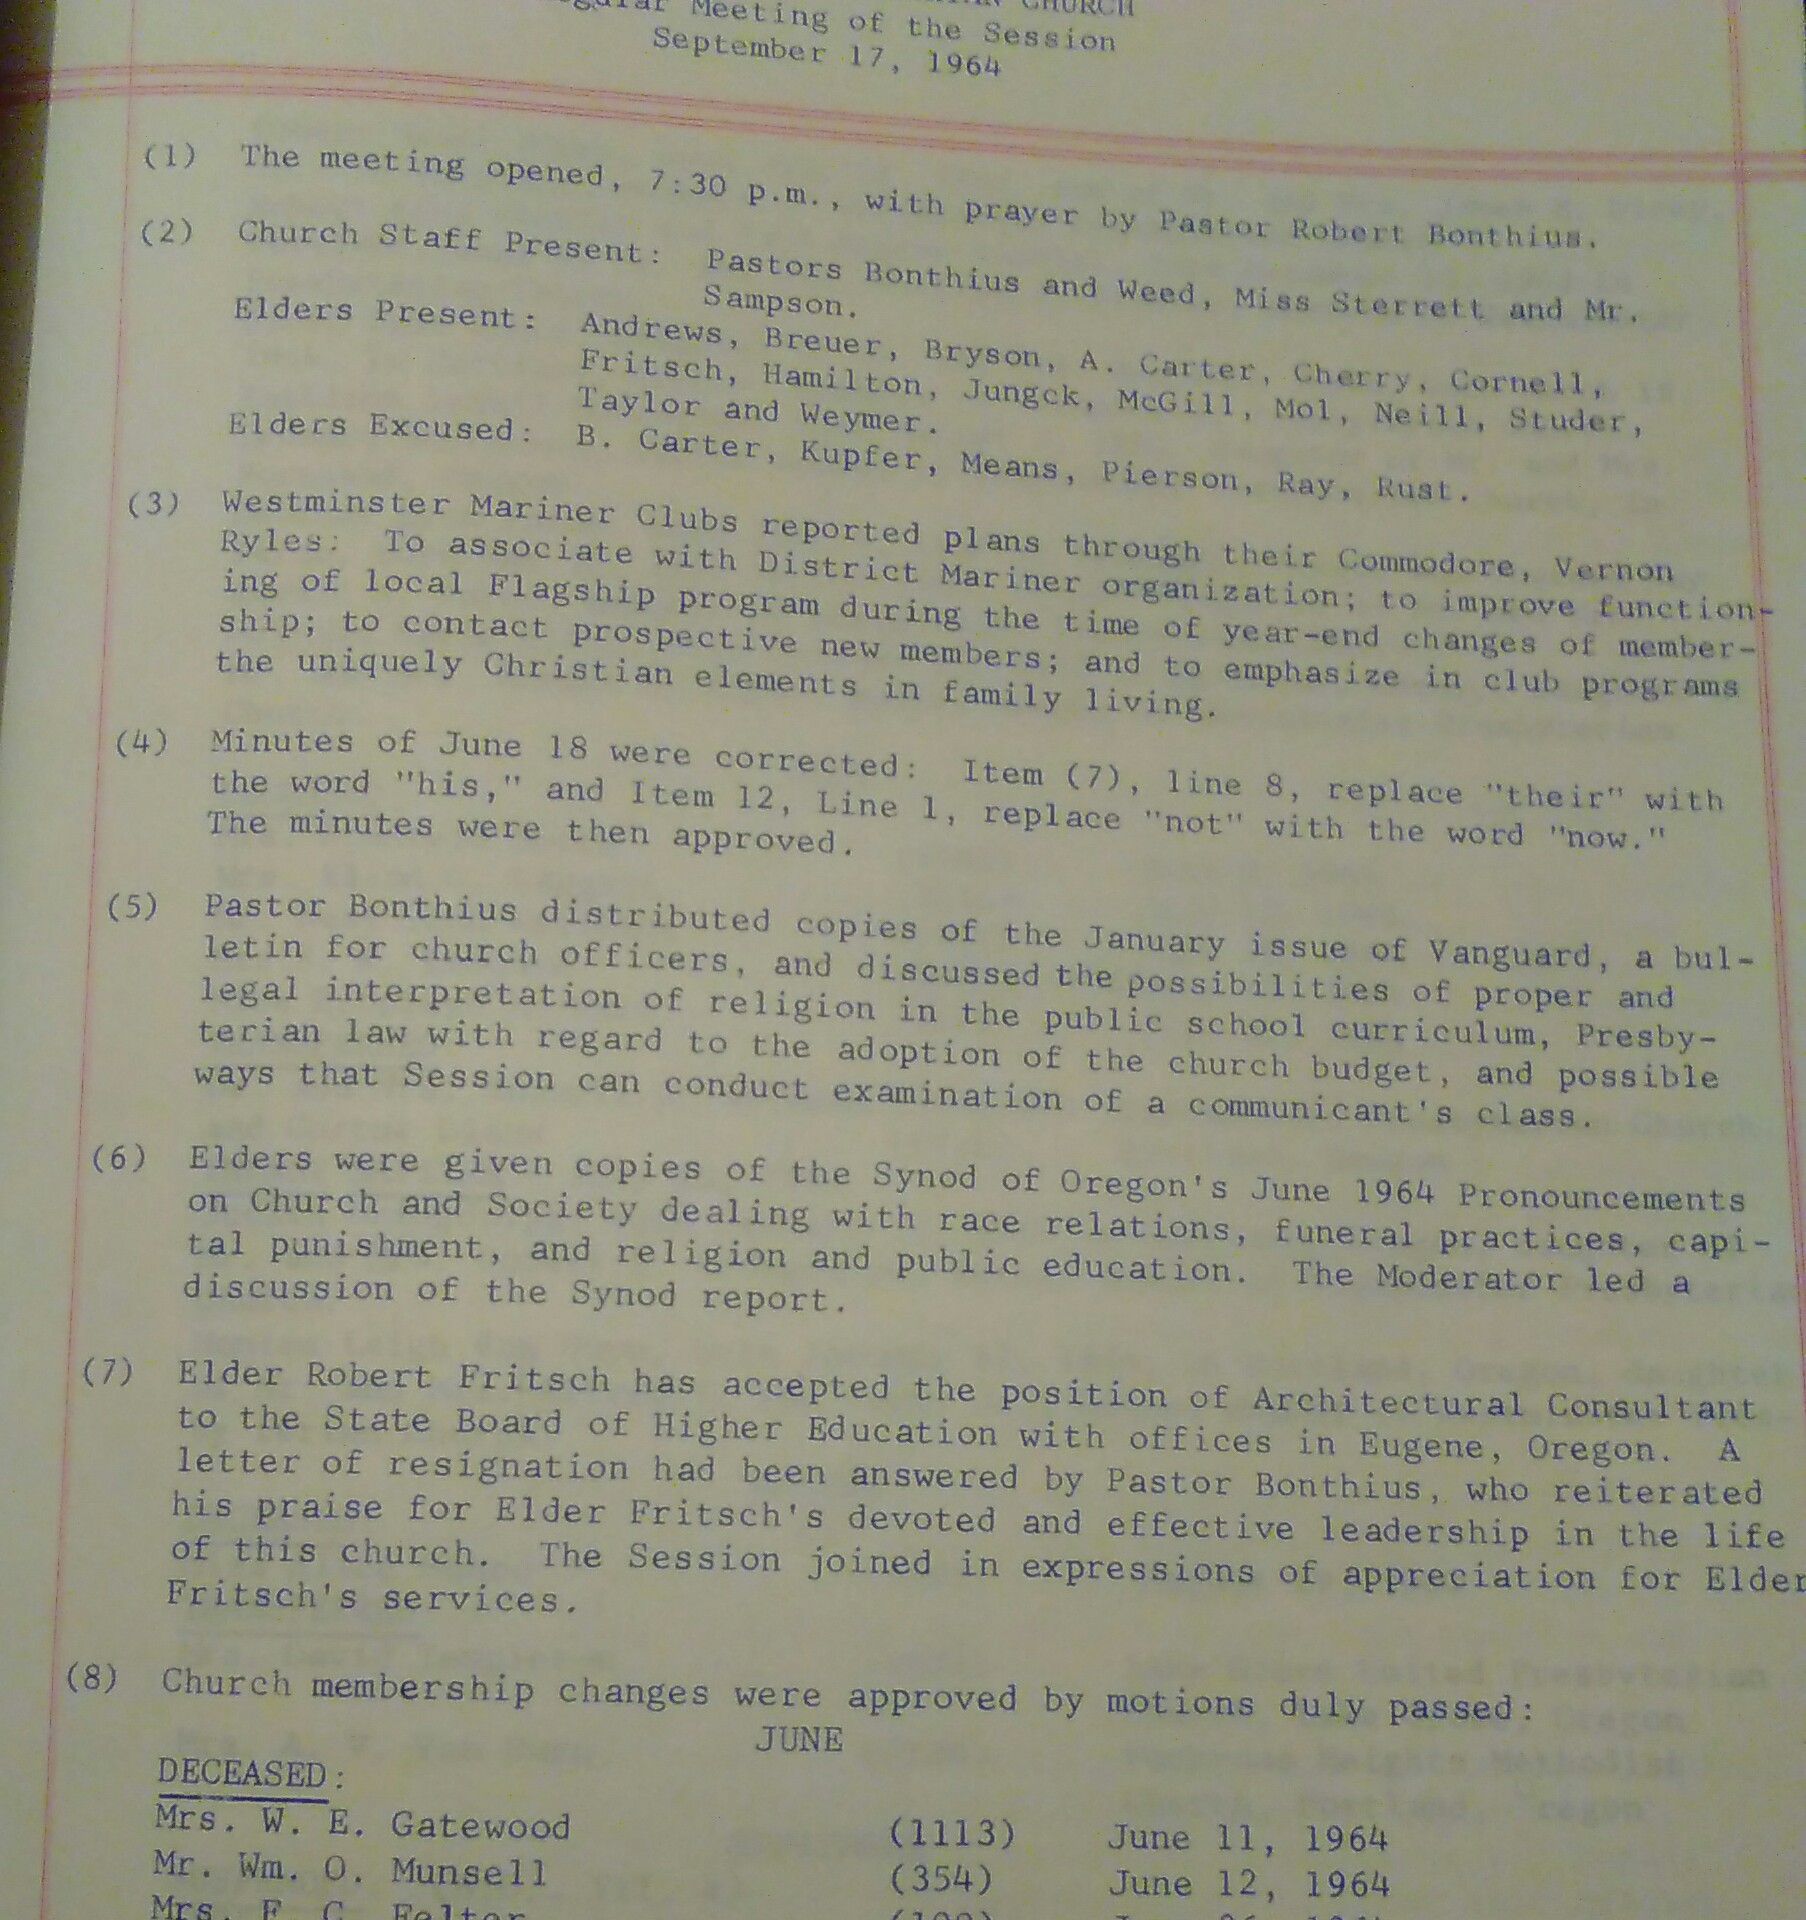 Session minutes 17 September 1964 Albina and